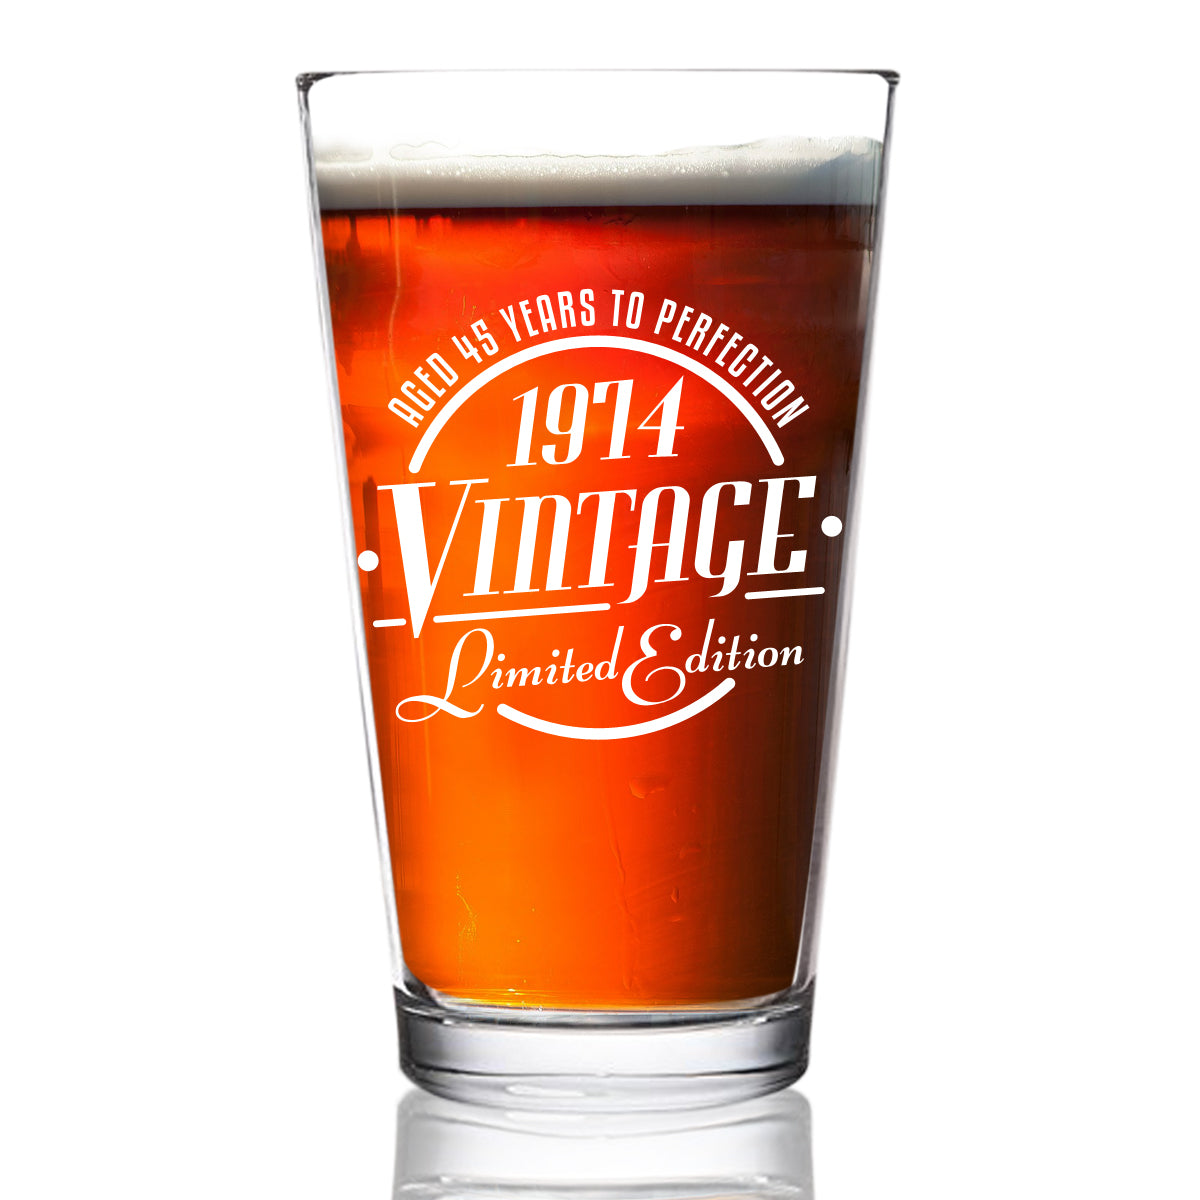 1974 Vintage Edition 45th Birthday Beer Glass for Men and Women (45th Anniversary) 16 oz- Elegant Happy Birthday Pint Beer Glasses for Craft Beer | Classic Birthday Gift, Reunion Gift for Him or Her